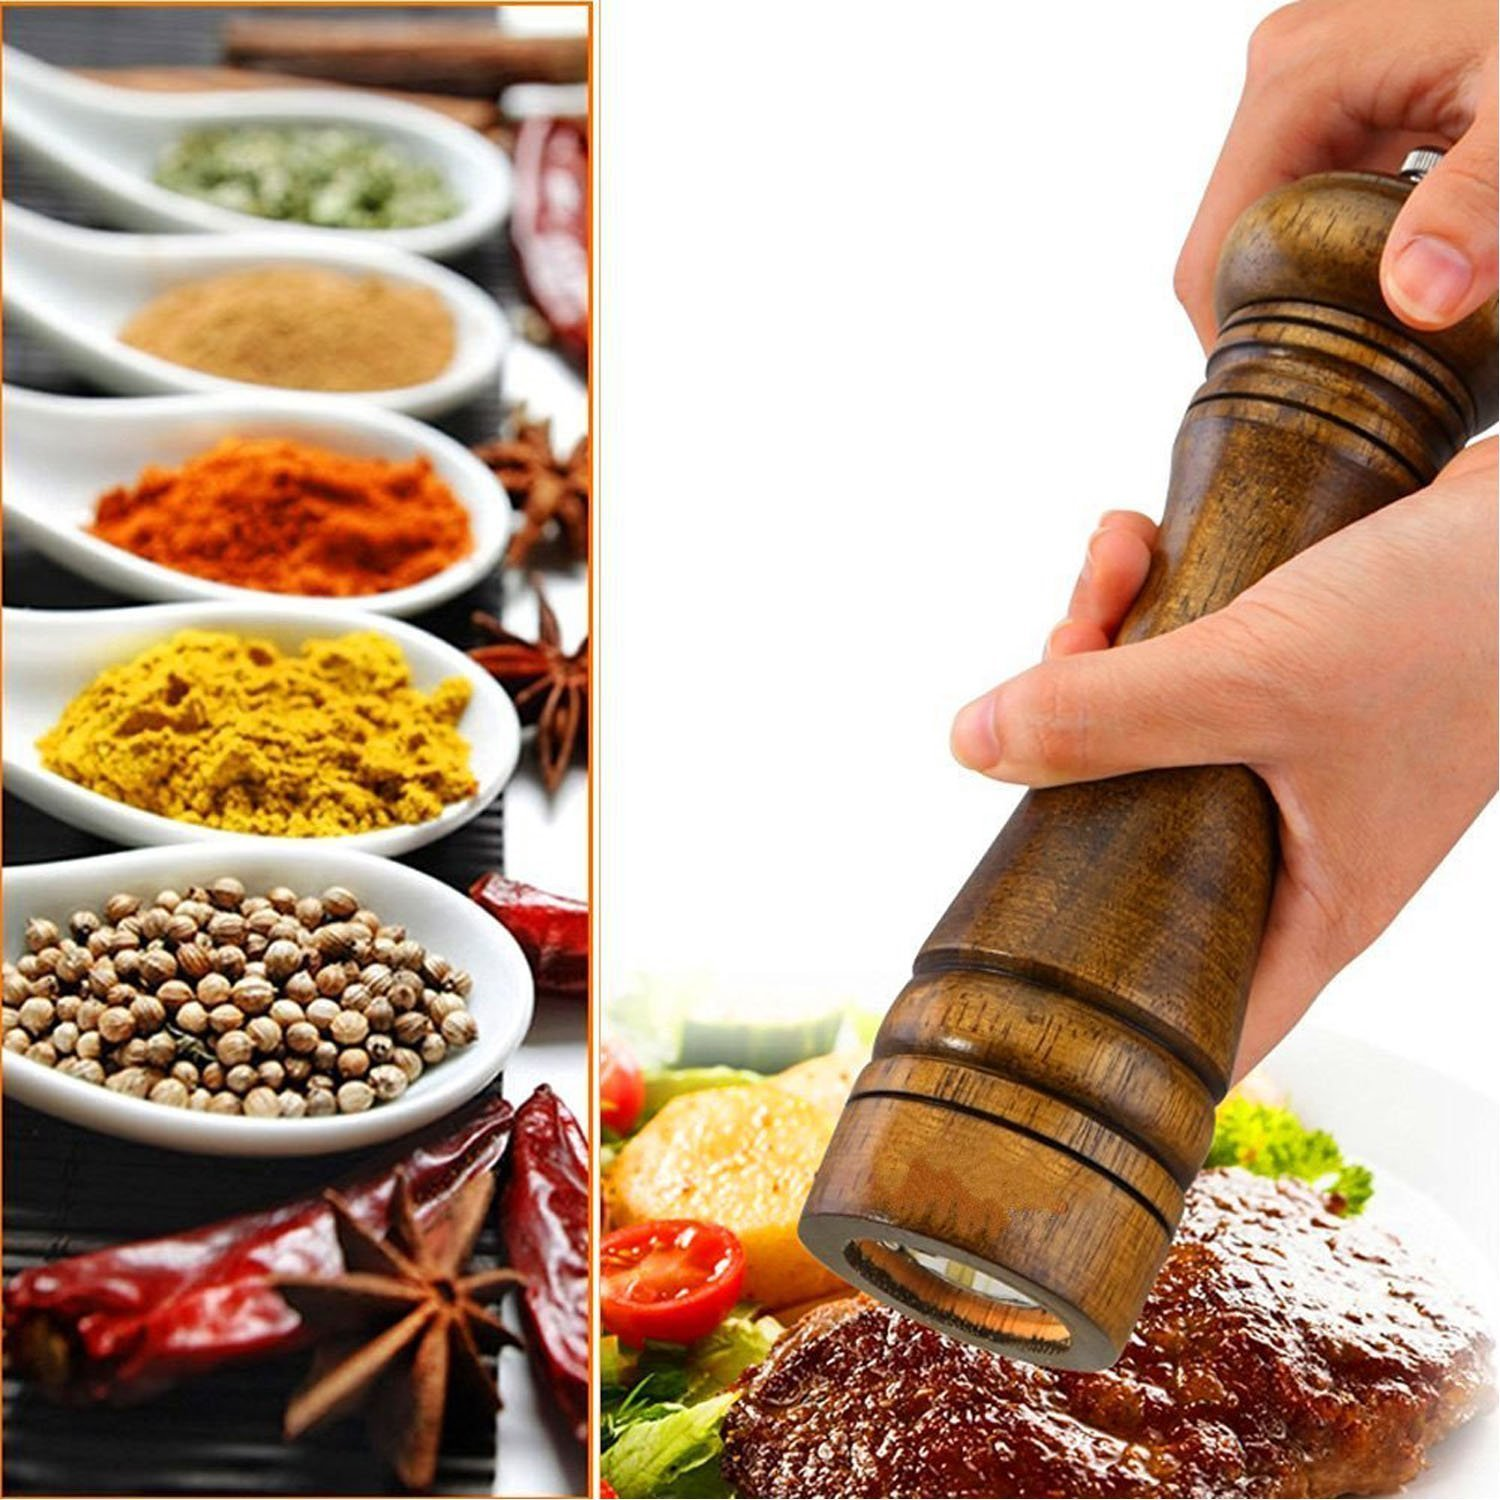 Wood Salt Pepper Grinder - Wooden Spice Mill Includes Precision Mechanism (8 inch) by TUHE (Image #6)